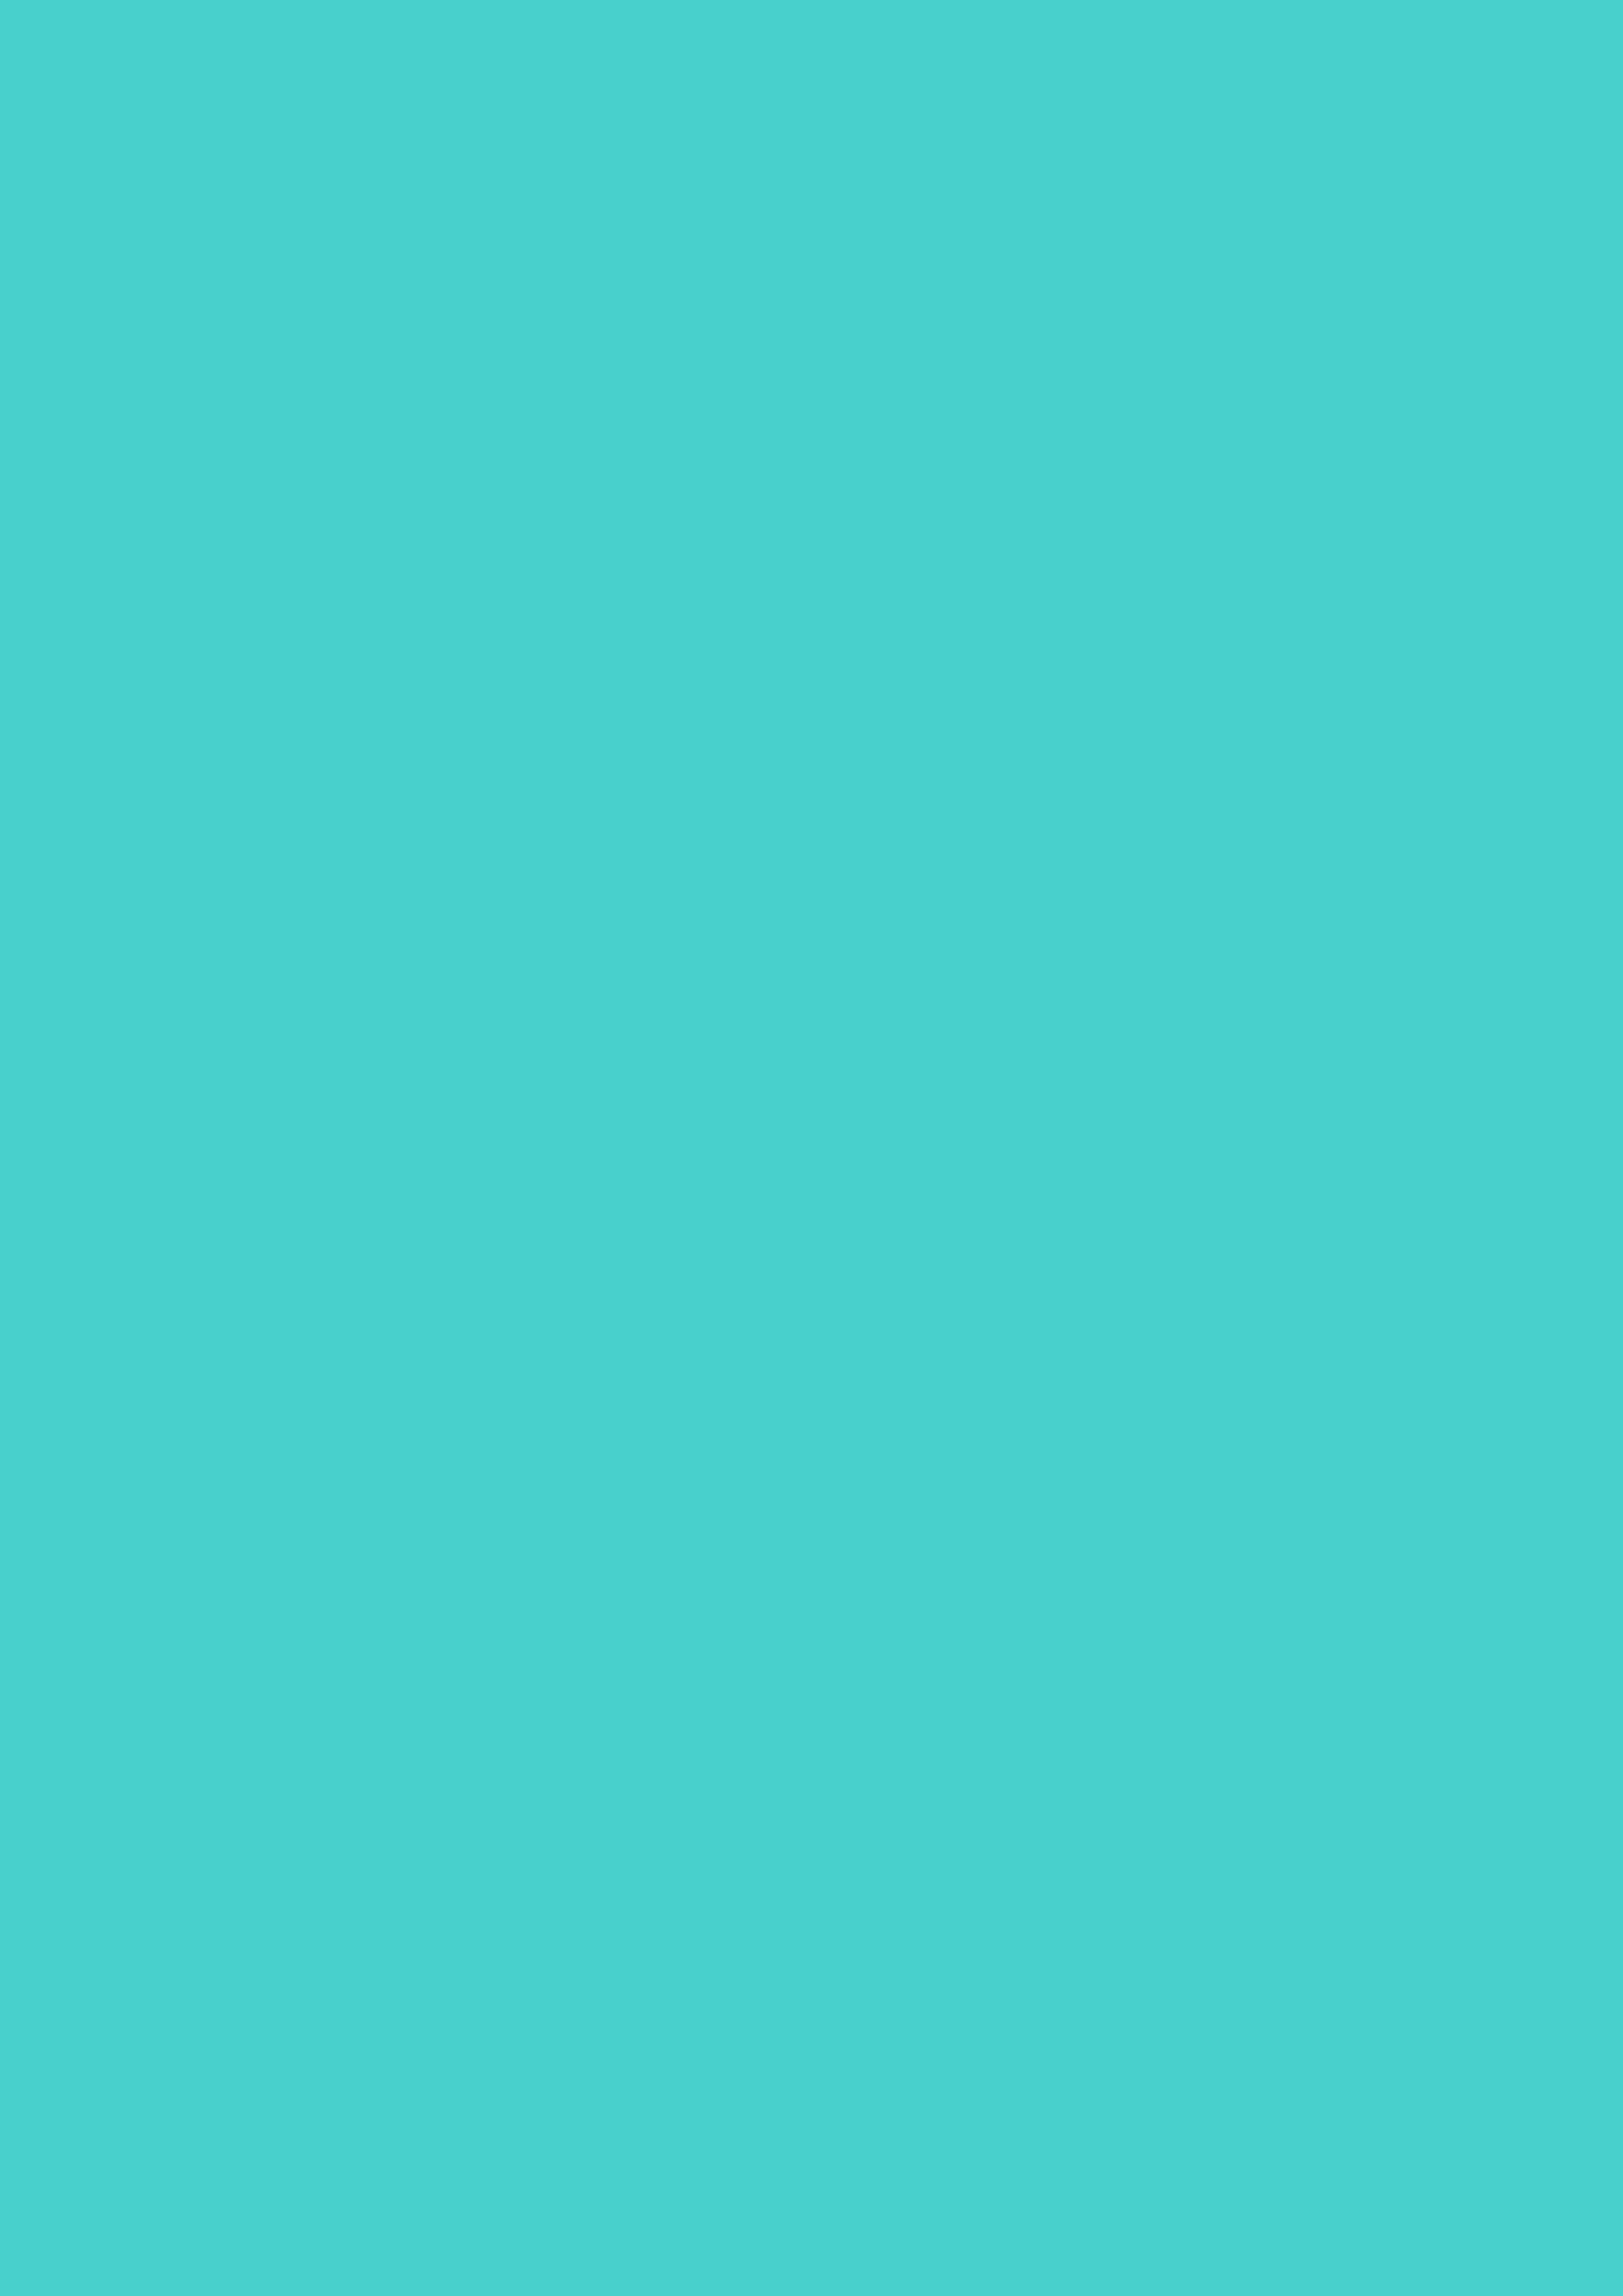 2480x3508 Medium Turquoise Solid Color Background